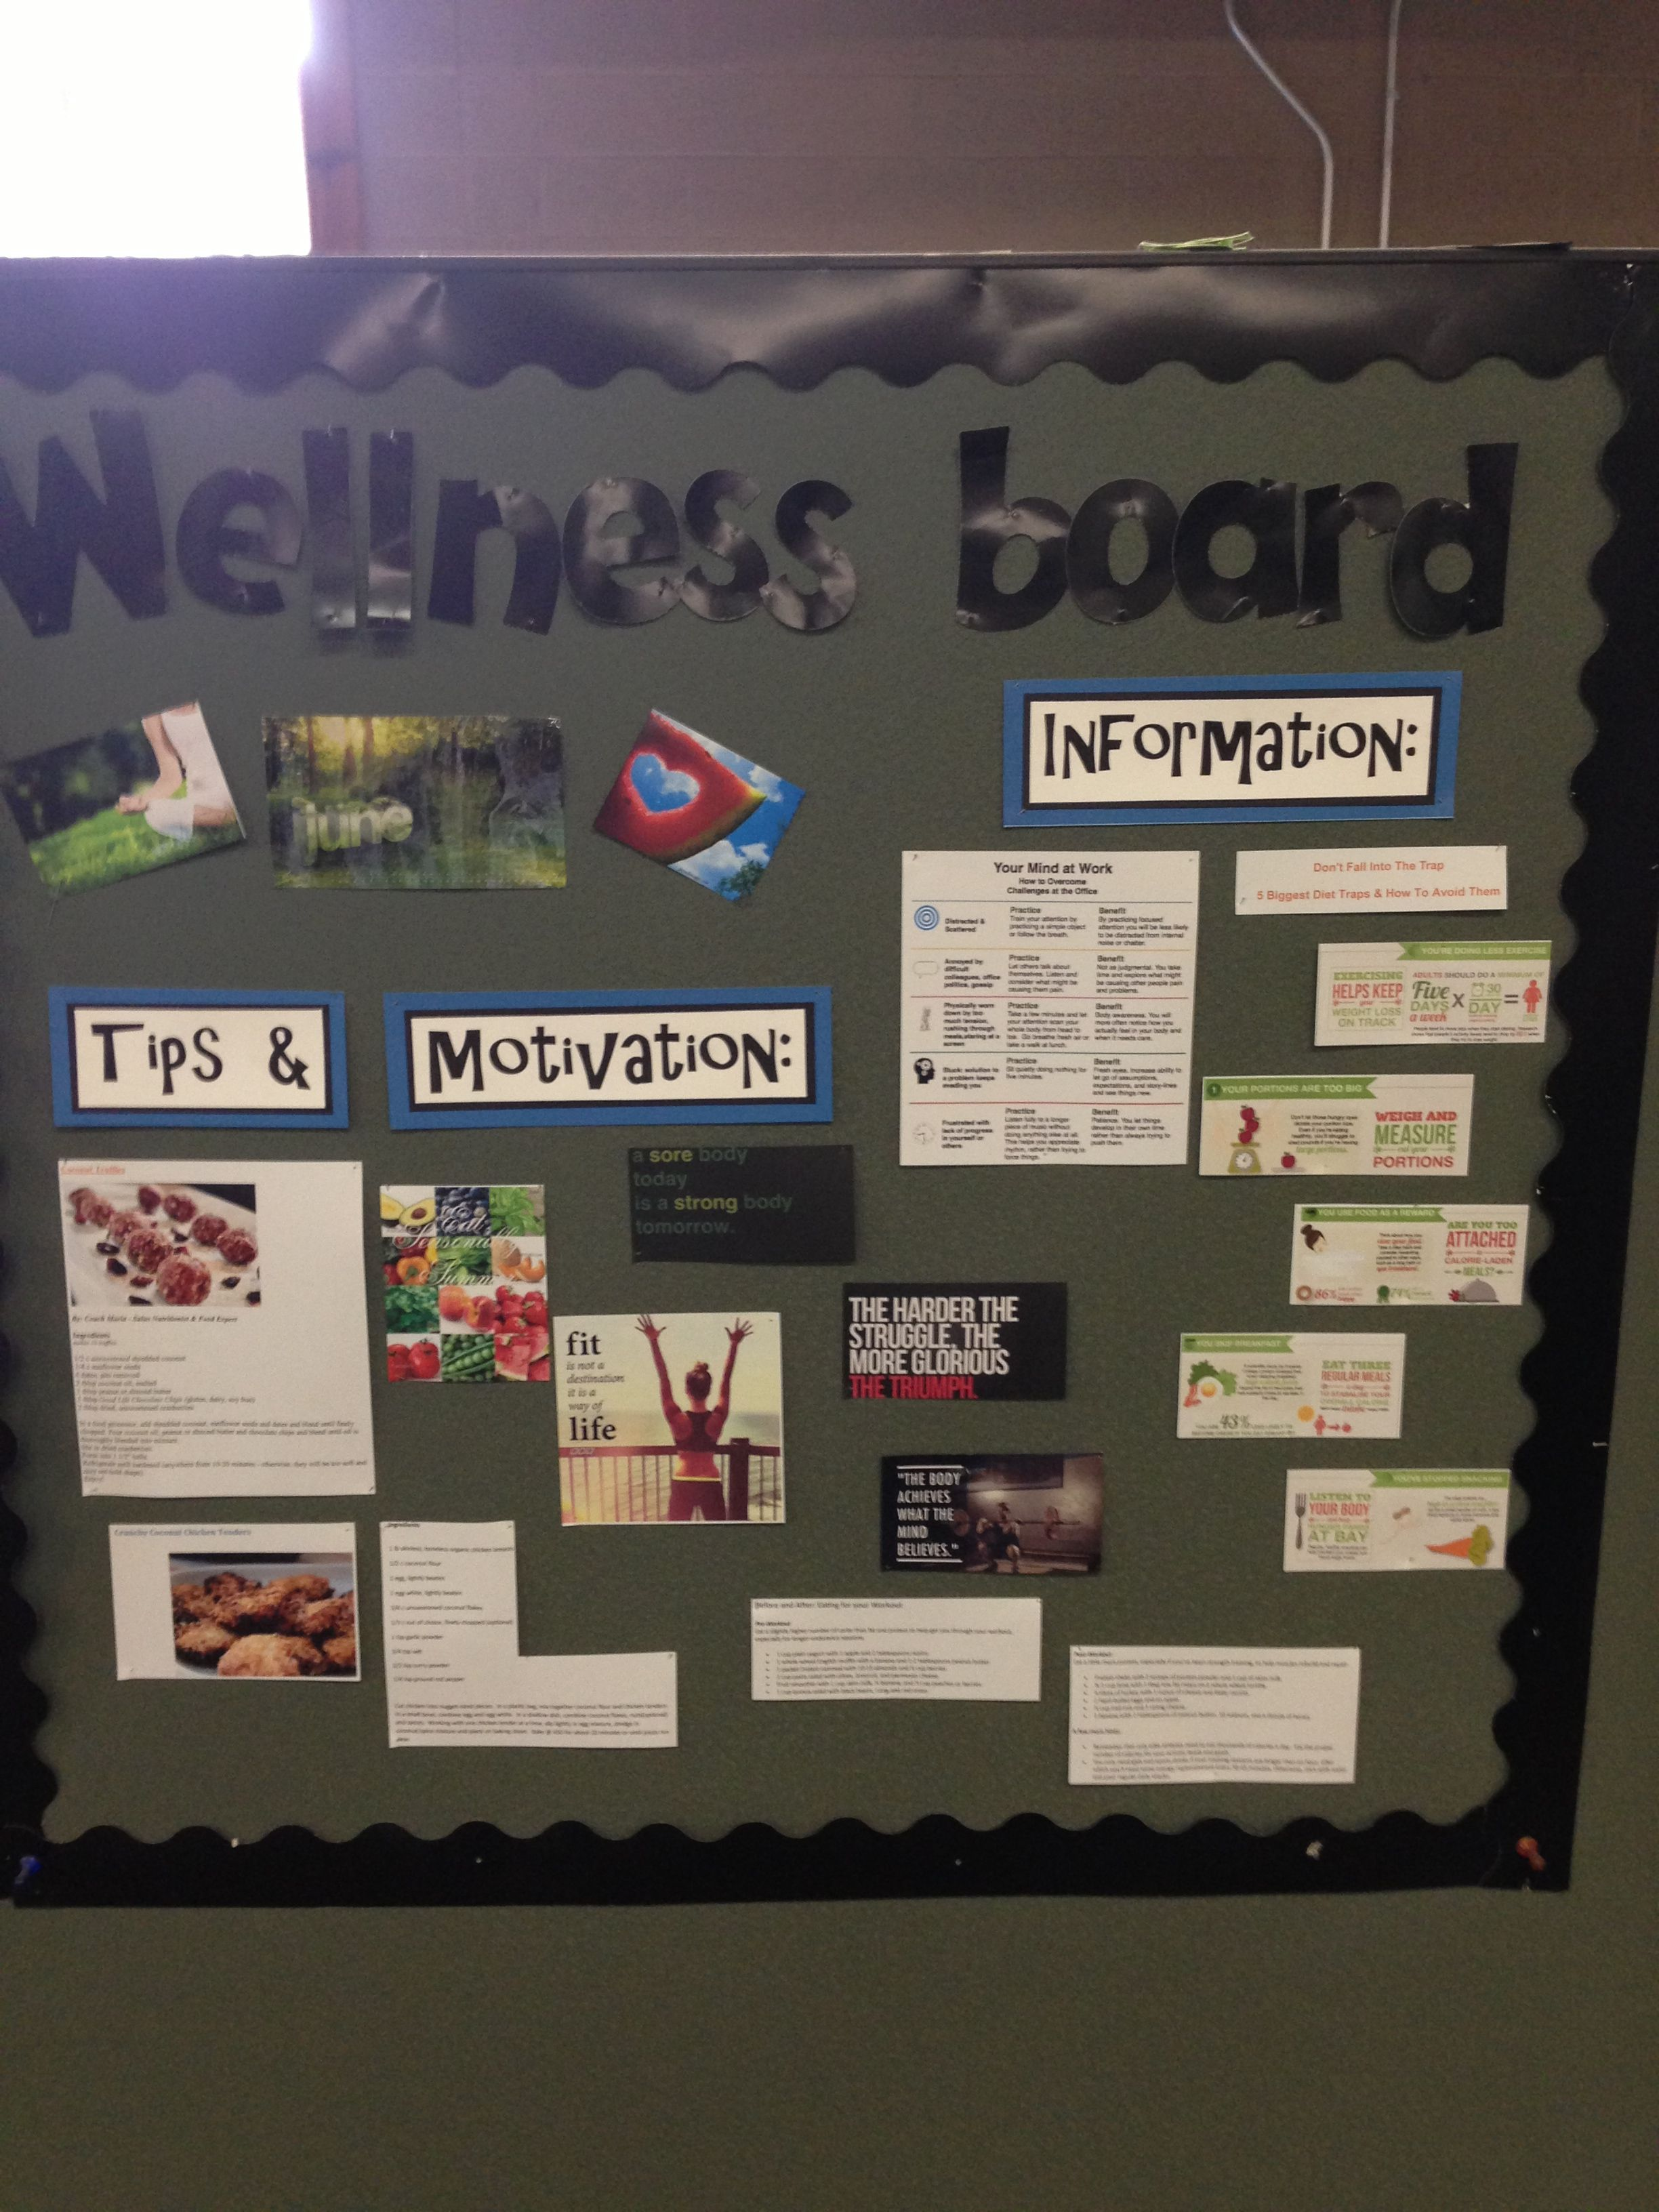 Wellness Board For The Office I Love This For Keeping The Team On